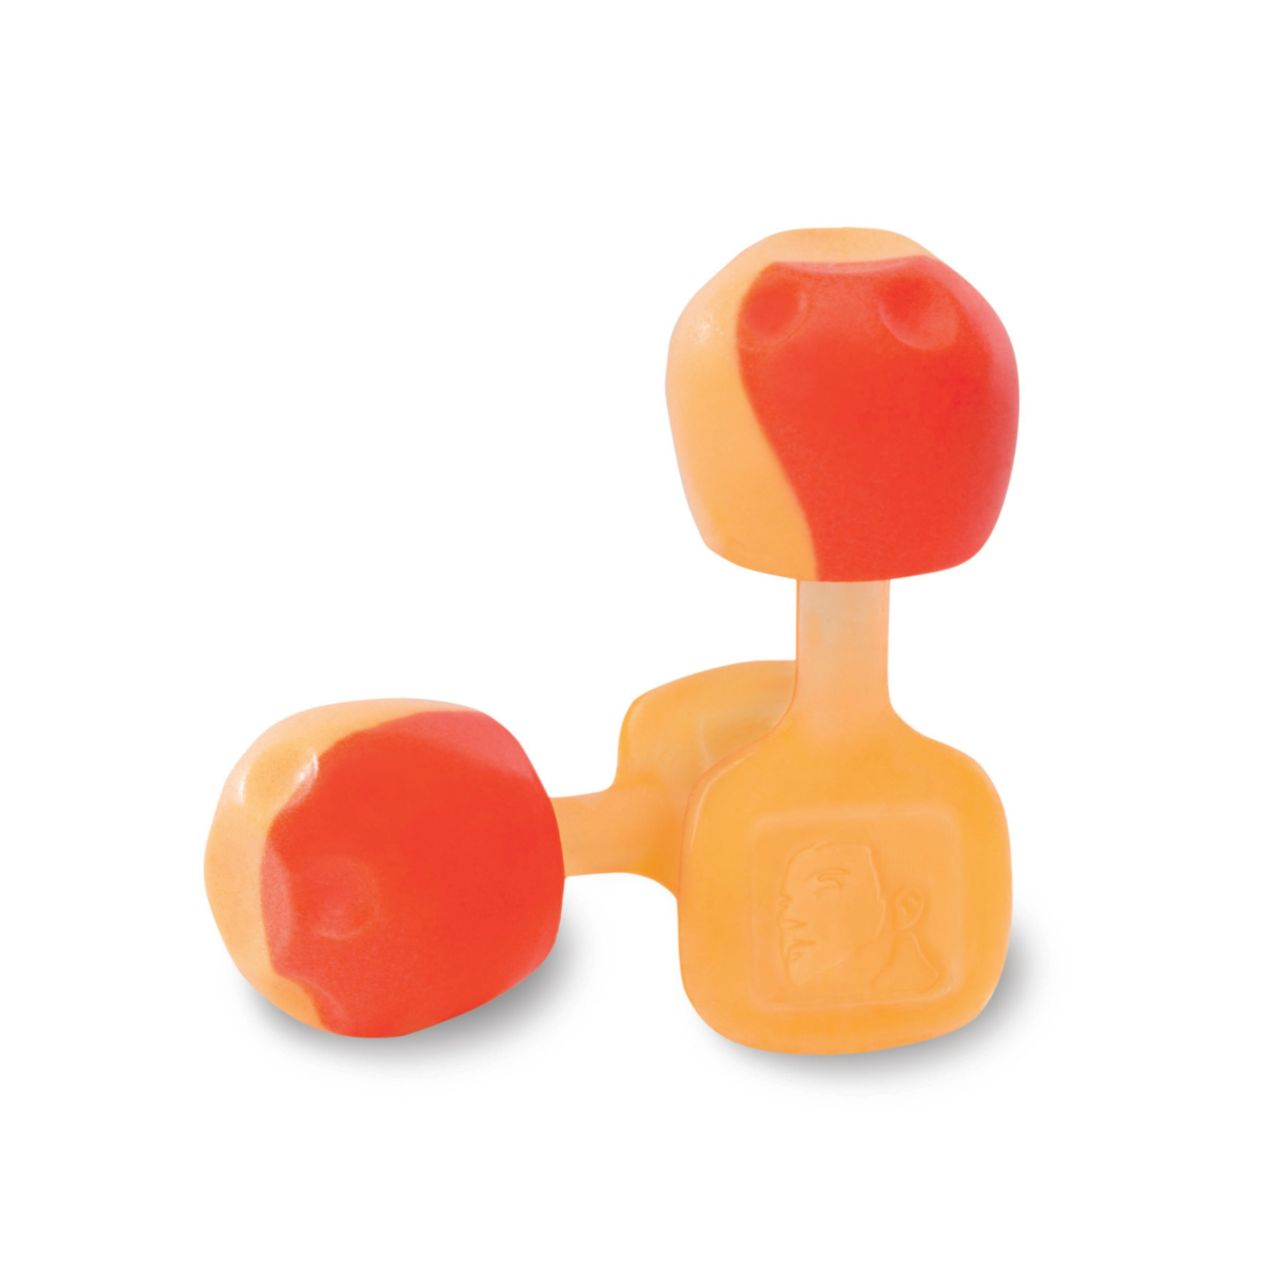 HL_trustfit-pod_howard leight trustfit pod push-in earplugs